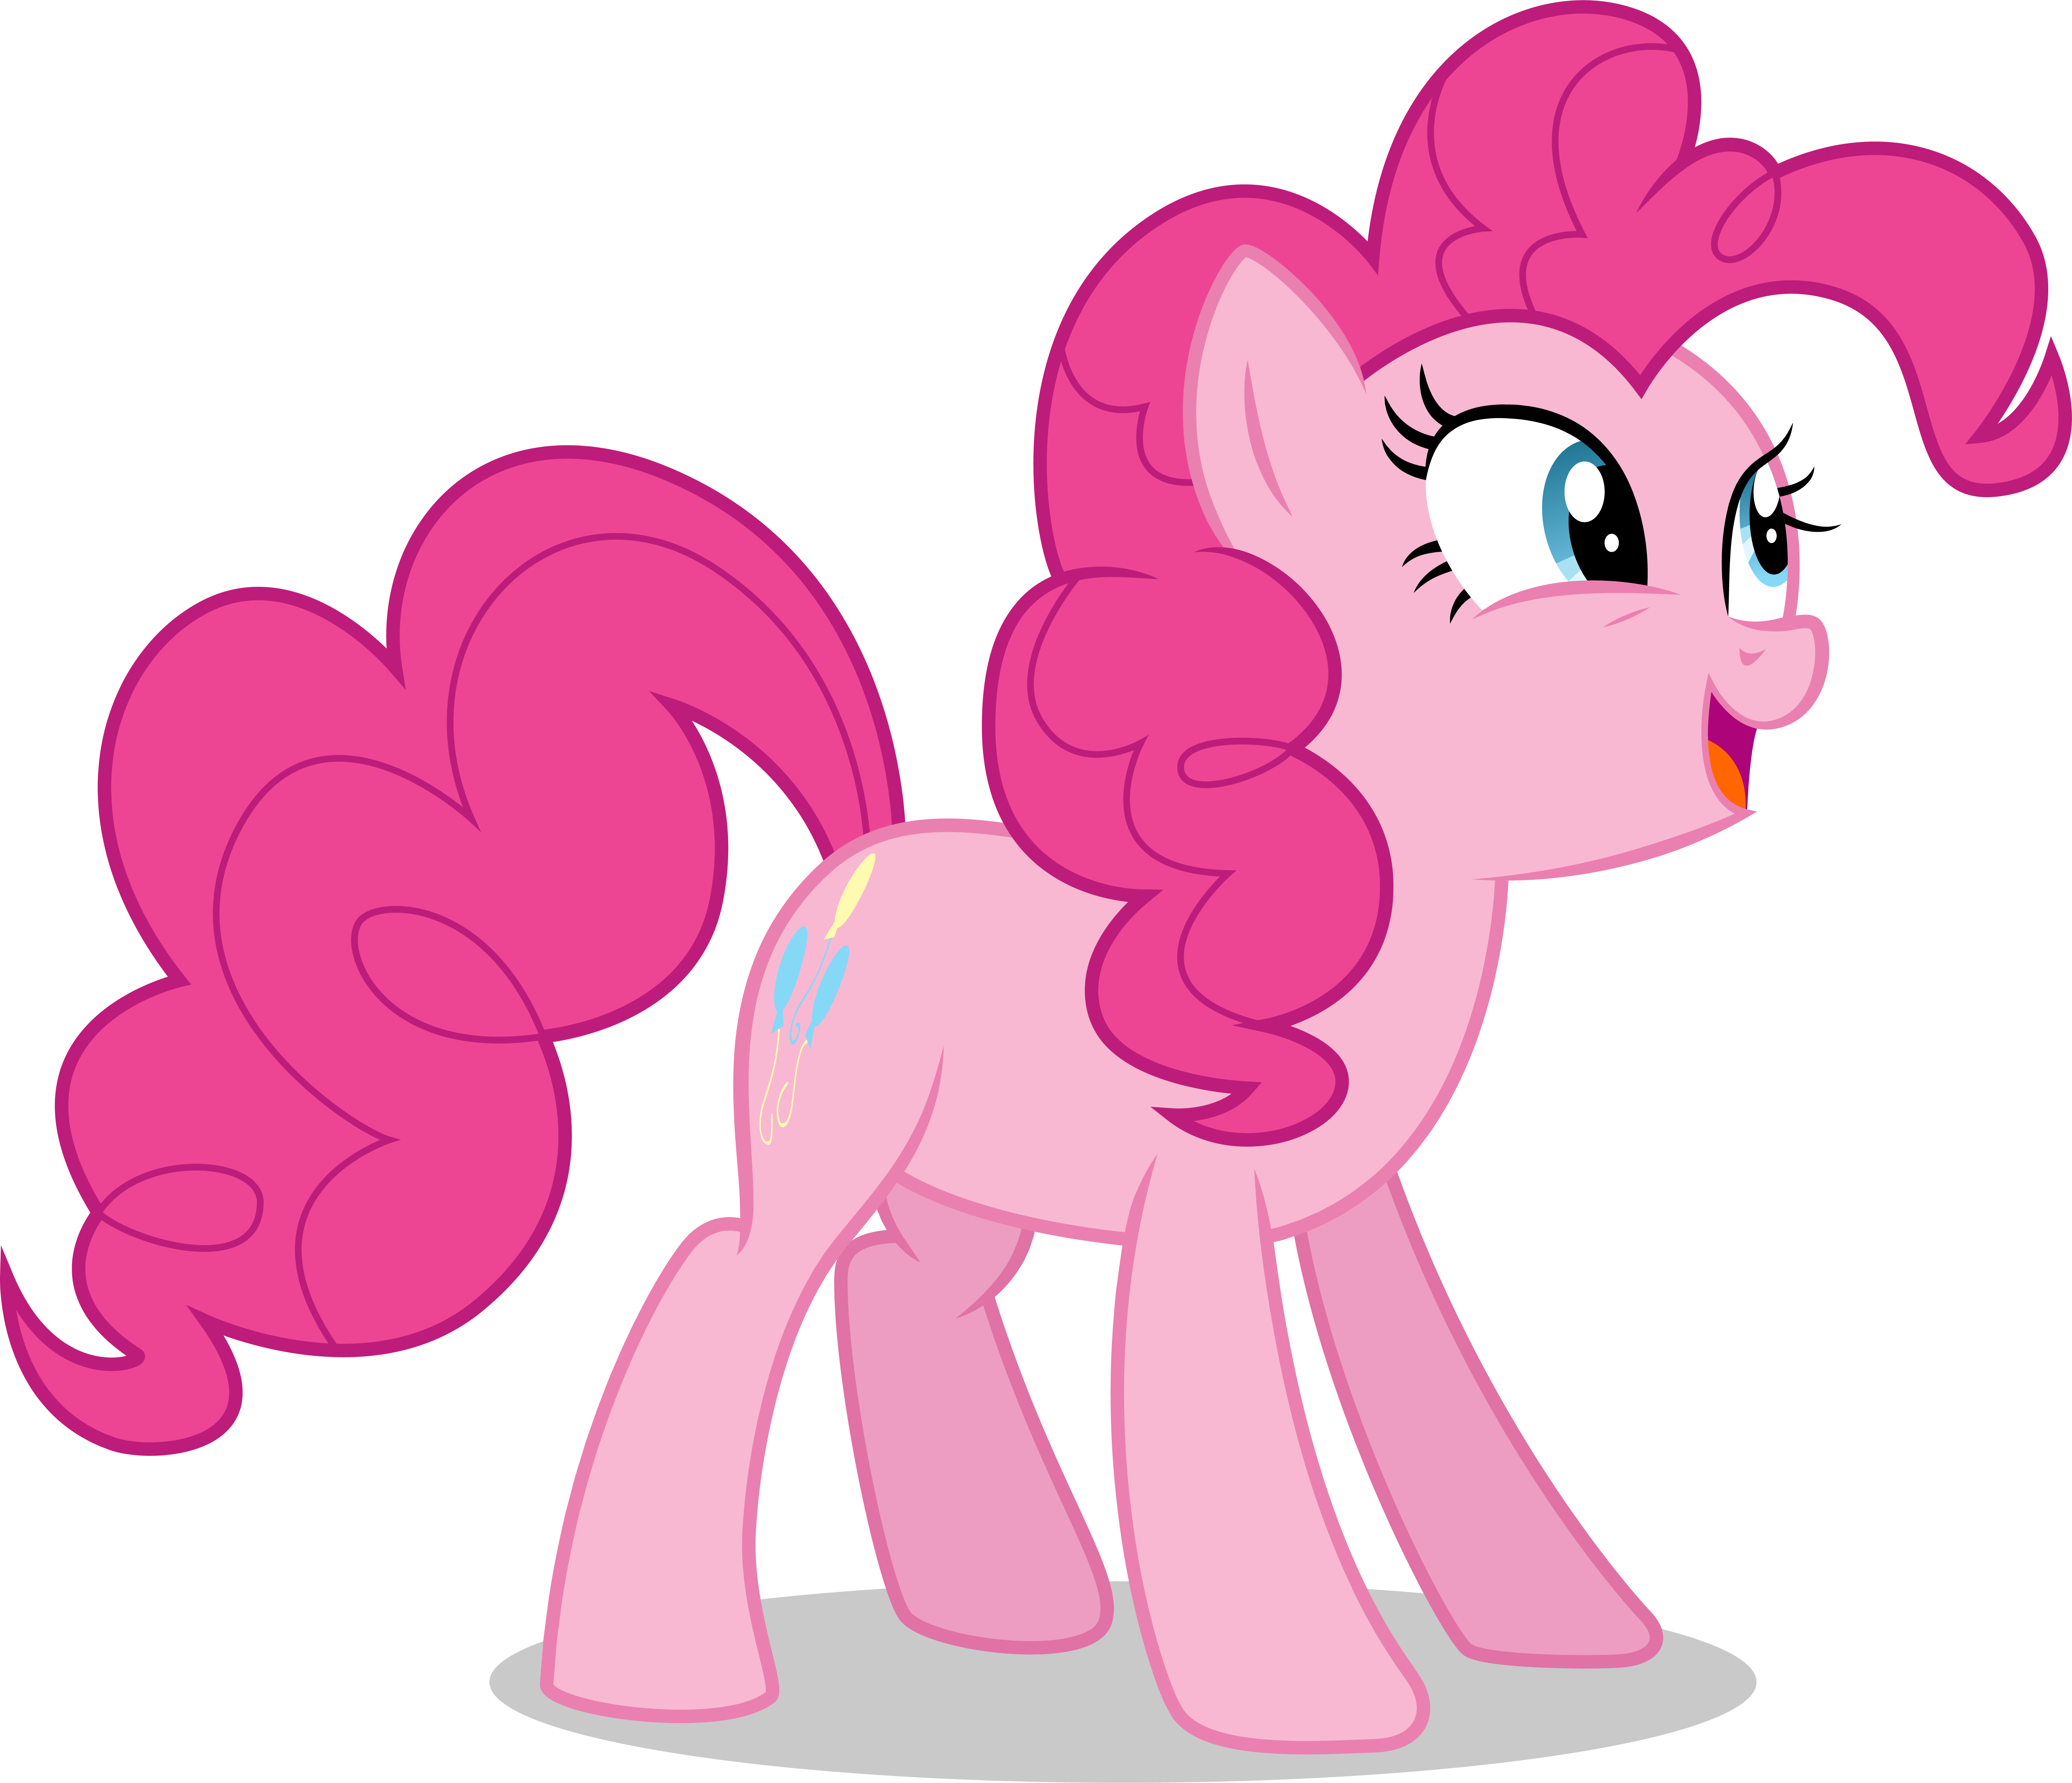 pinkie pie joyful face by illumnious pinkie pie joyful face by illumnious